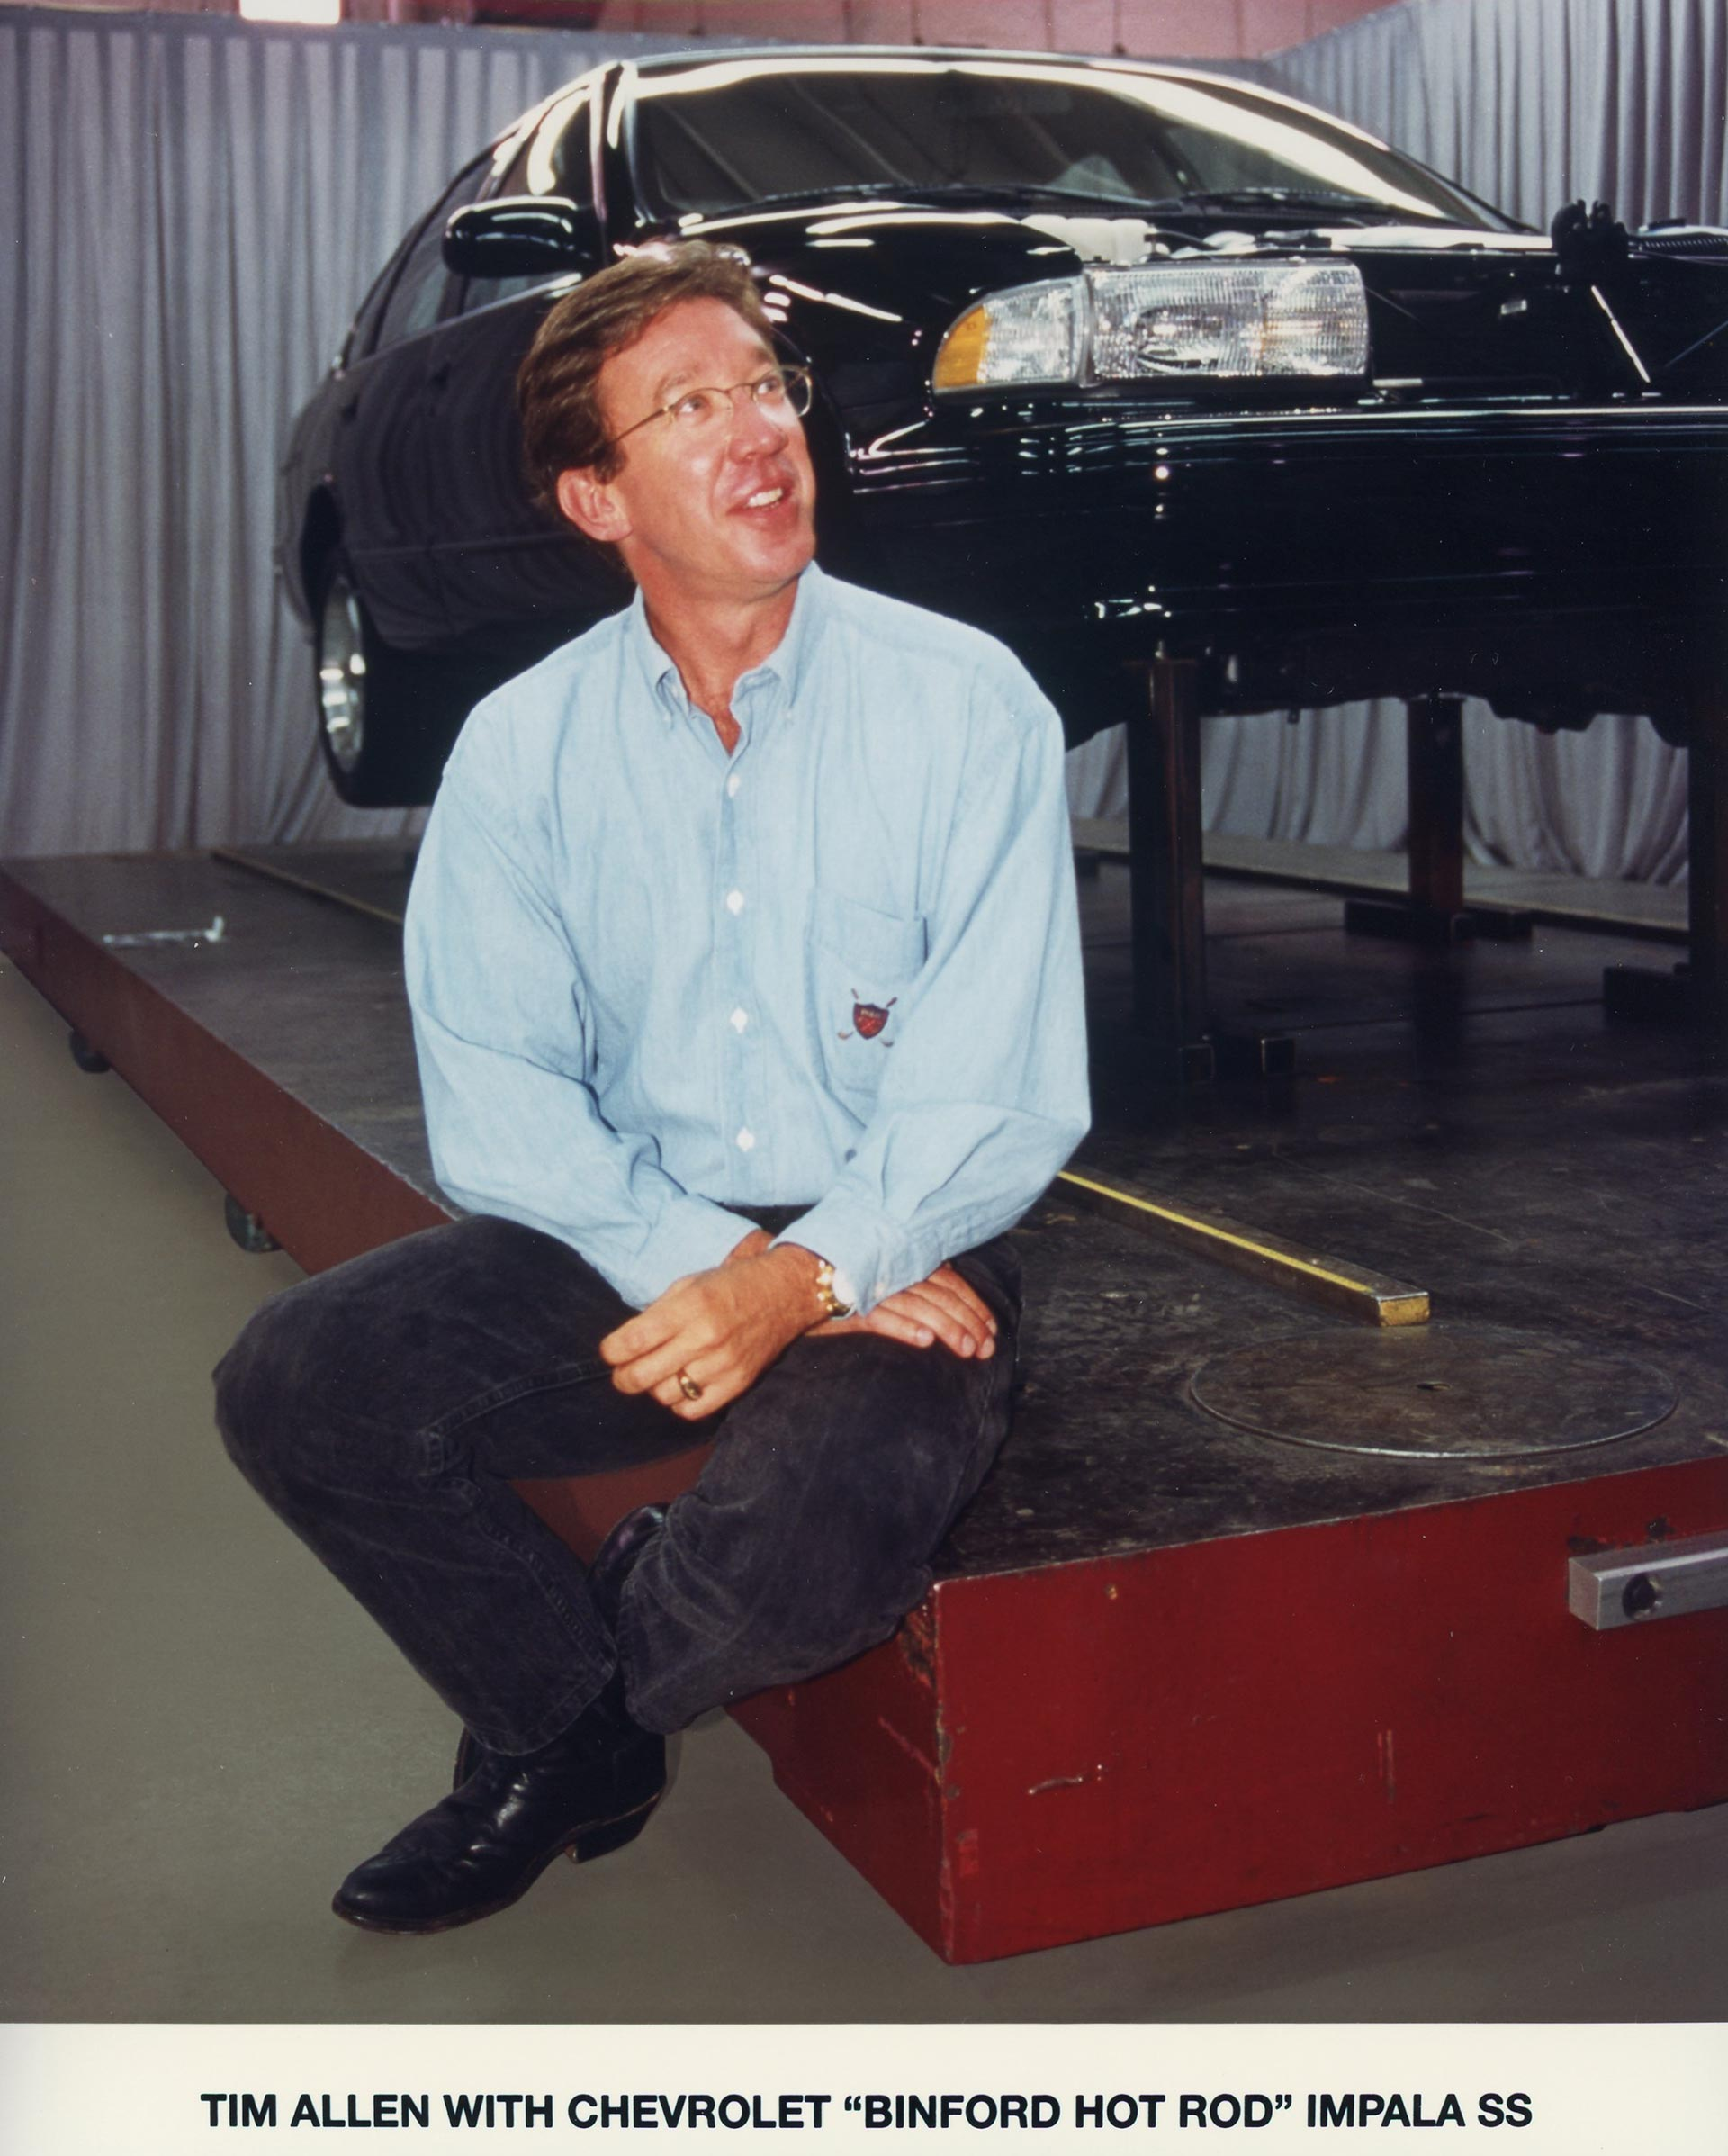 Tim Allen with the Chevrolet Impala SS